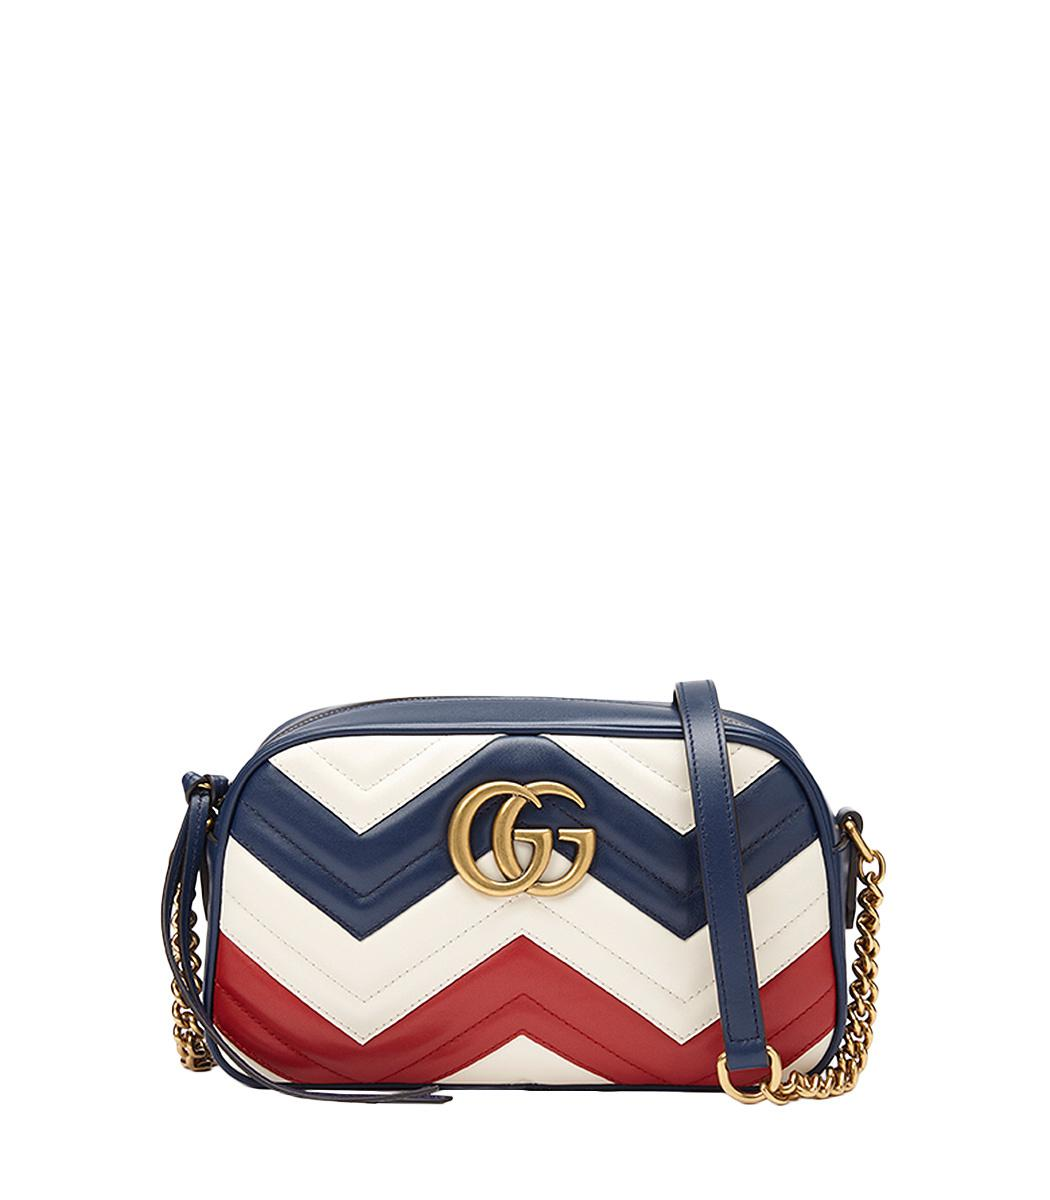 d2a85736591 Lyst - Gucci Red White   Blue  gg Marmont  Bag in Blue